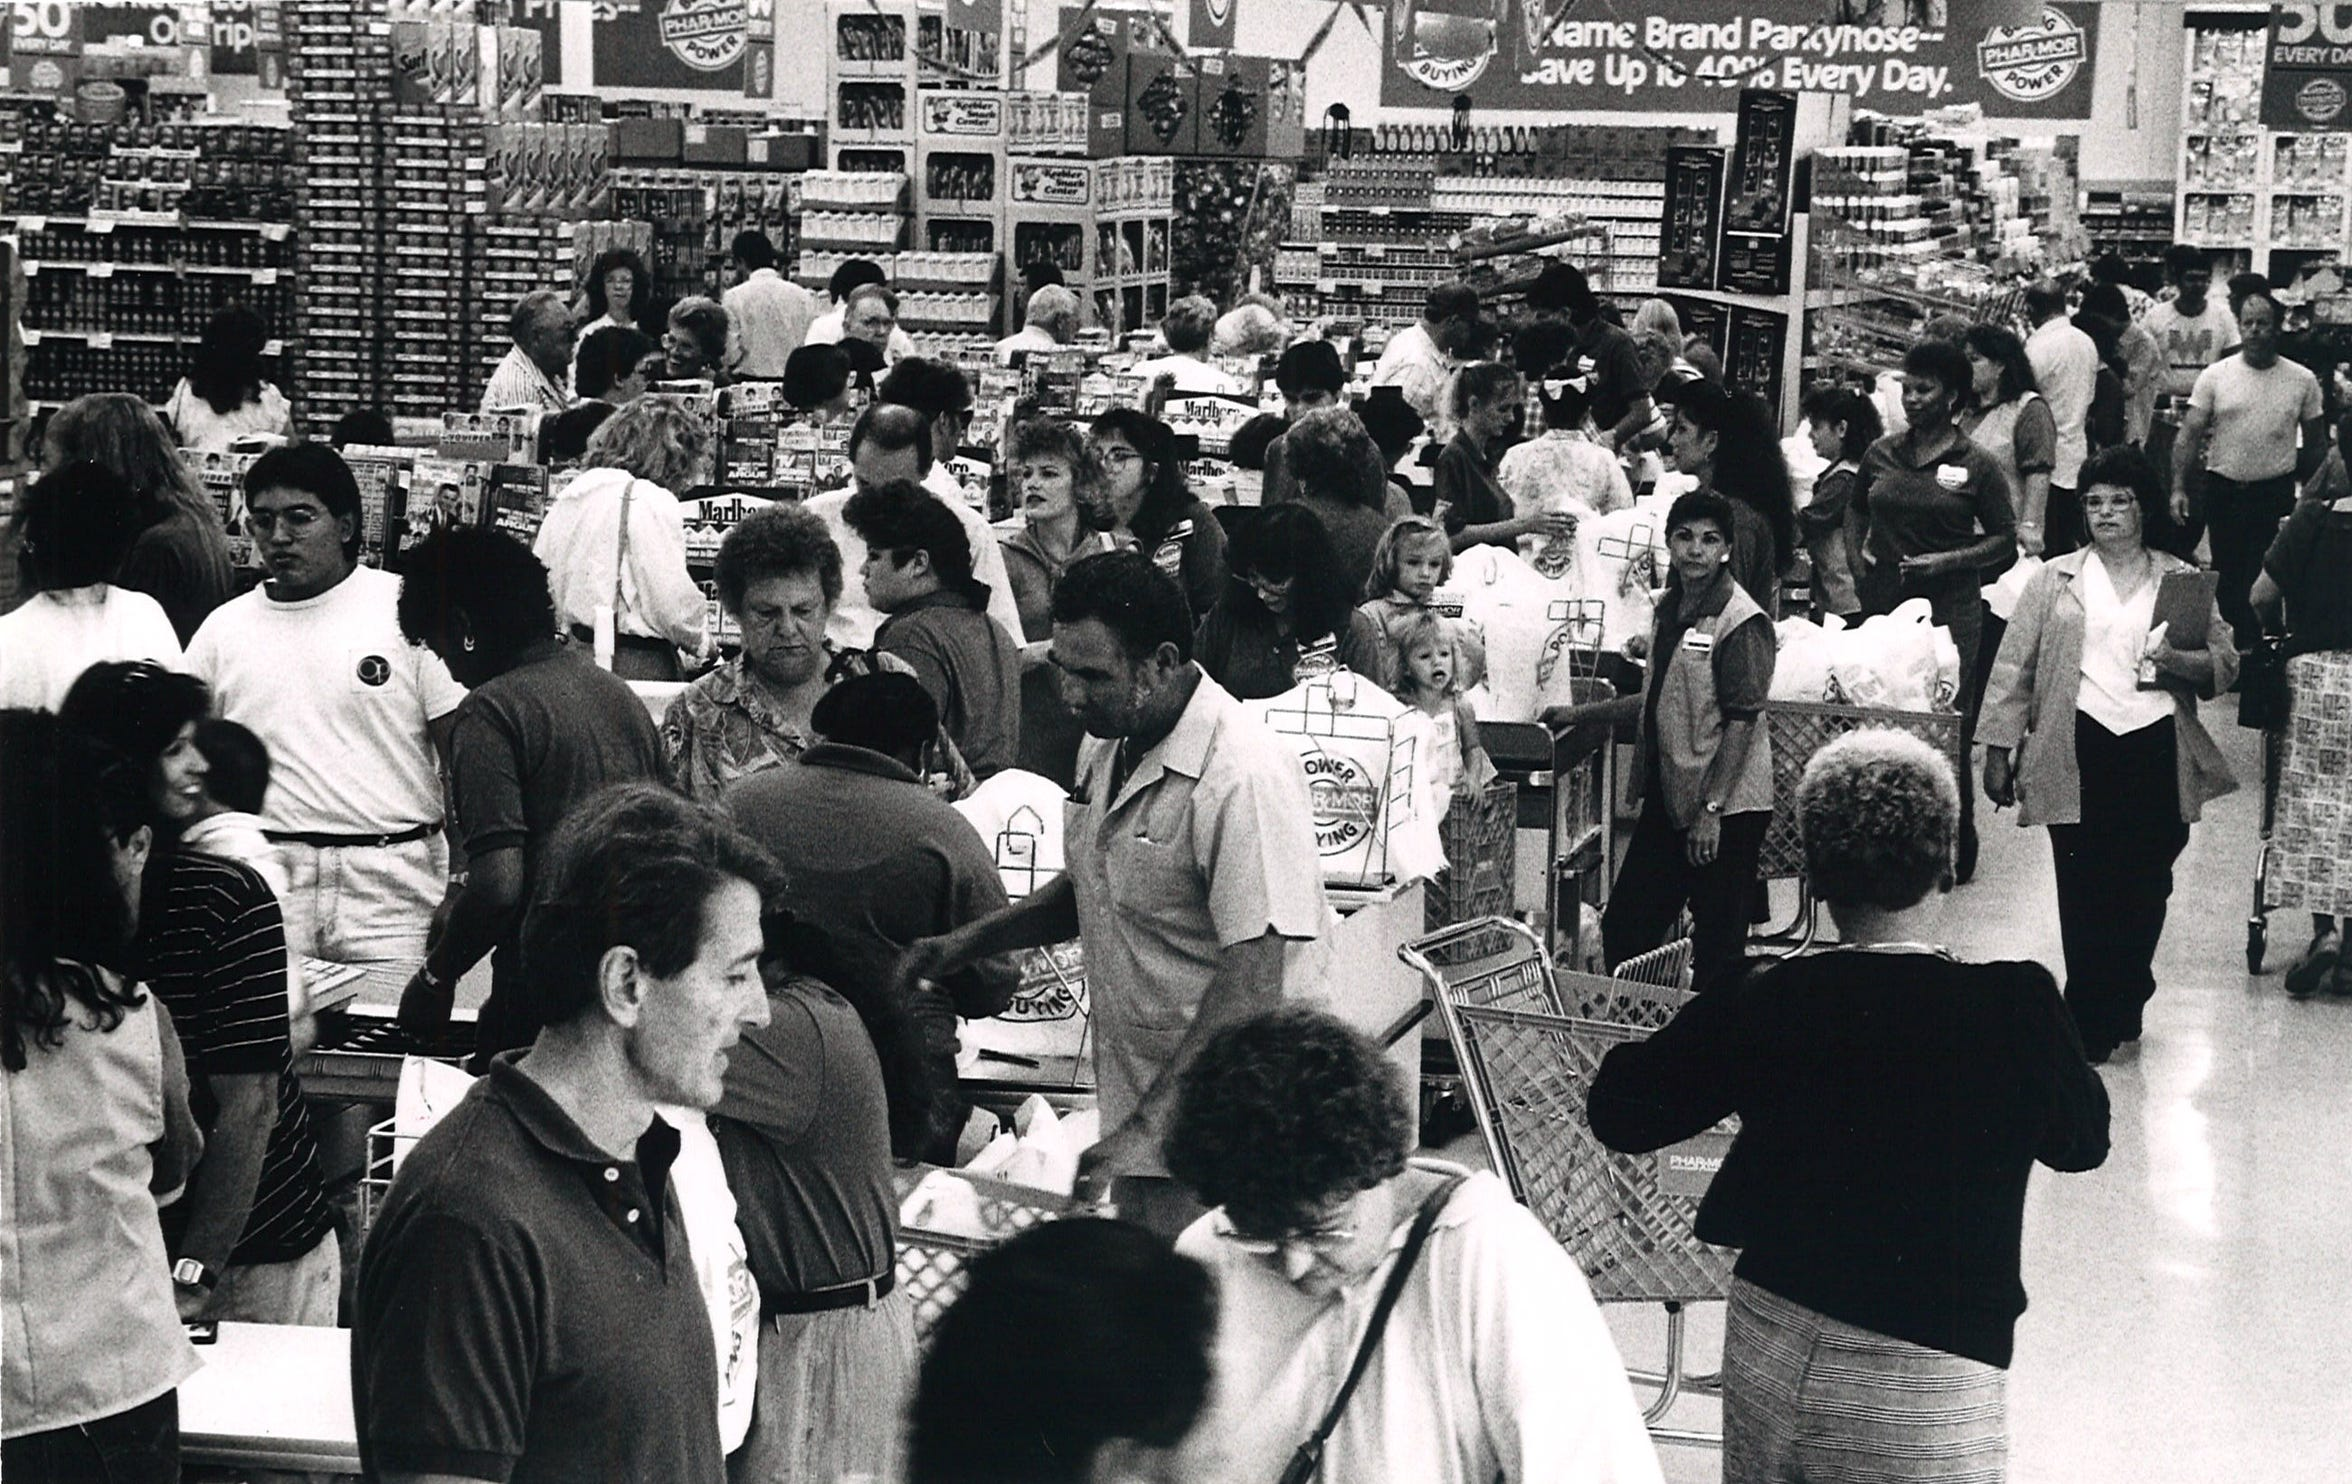 Customers lined up to checkout during the opening of Phar-Mor in Moore Plaza on Sept. 13, 1989.